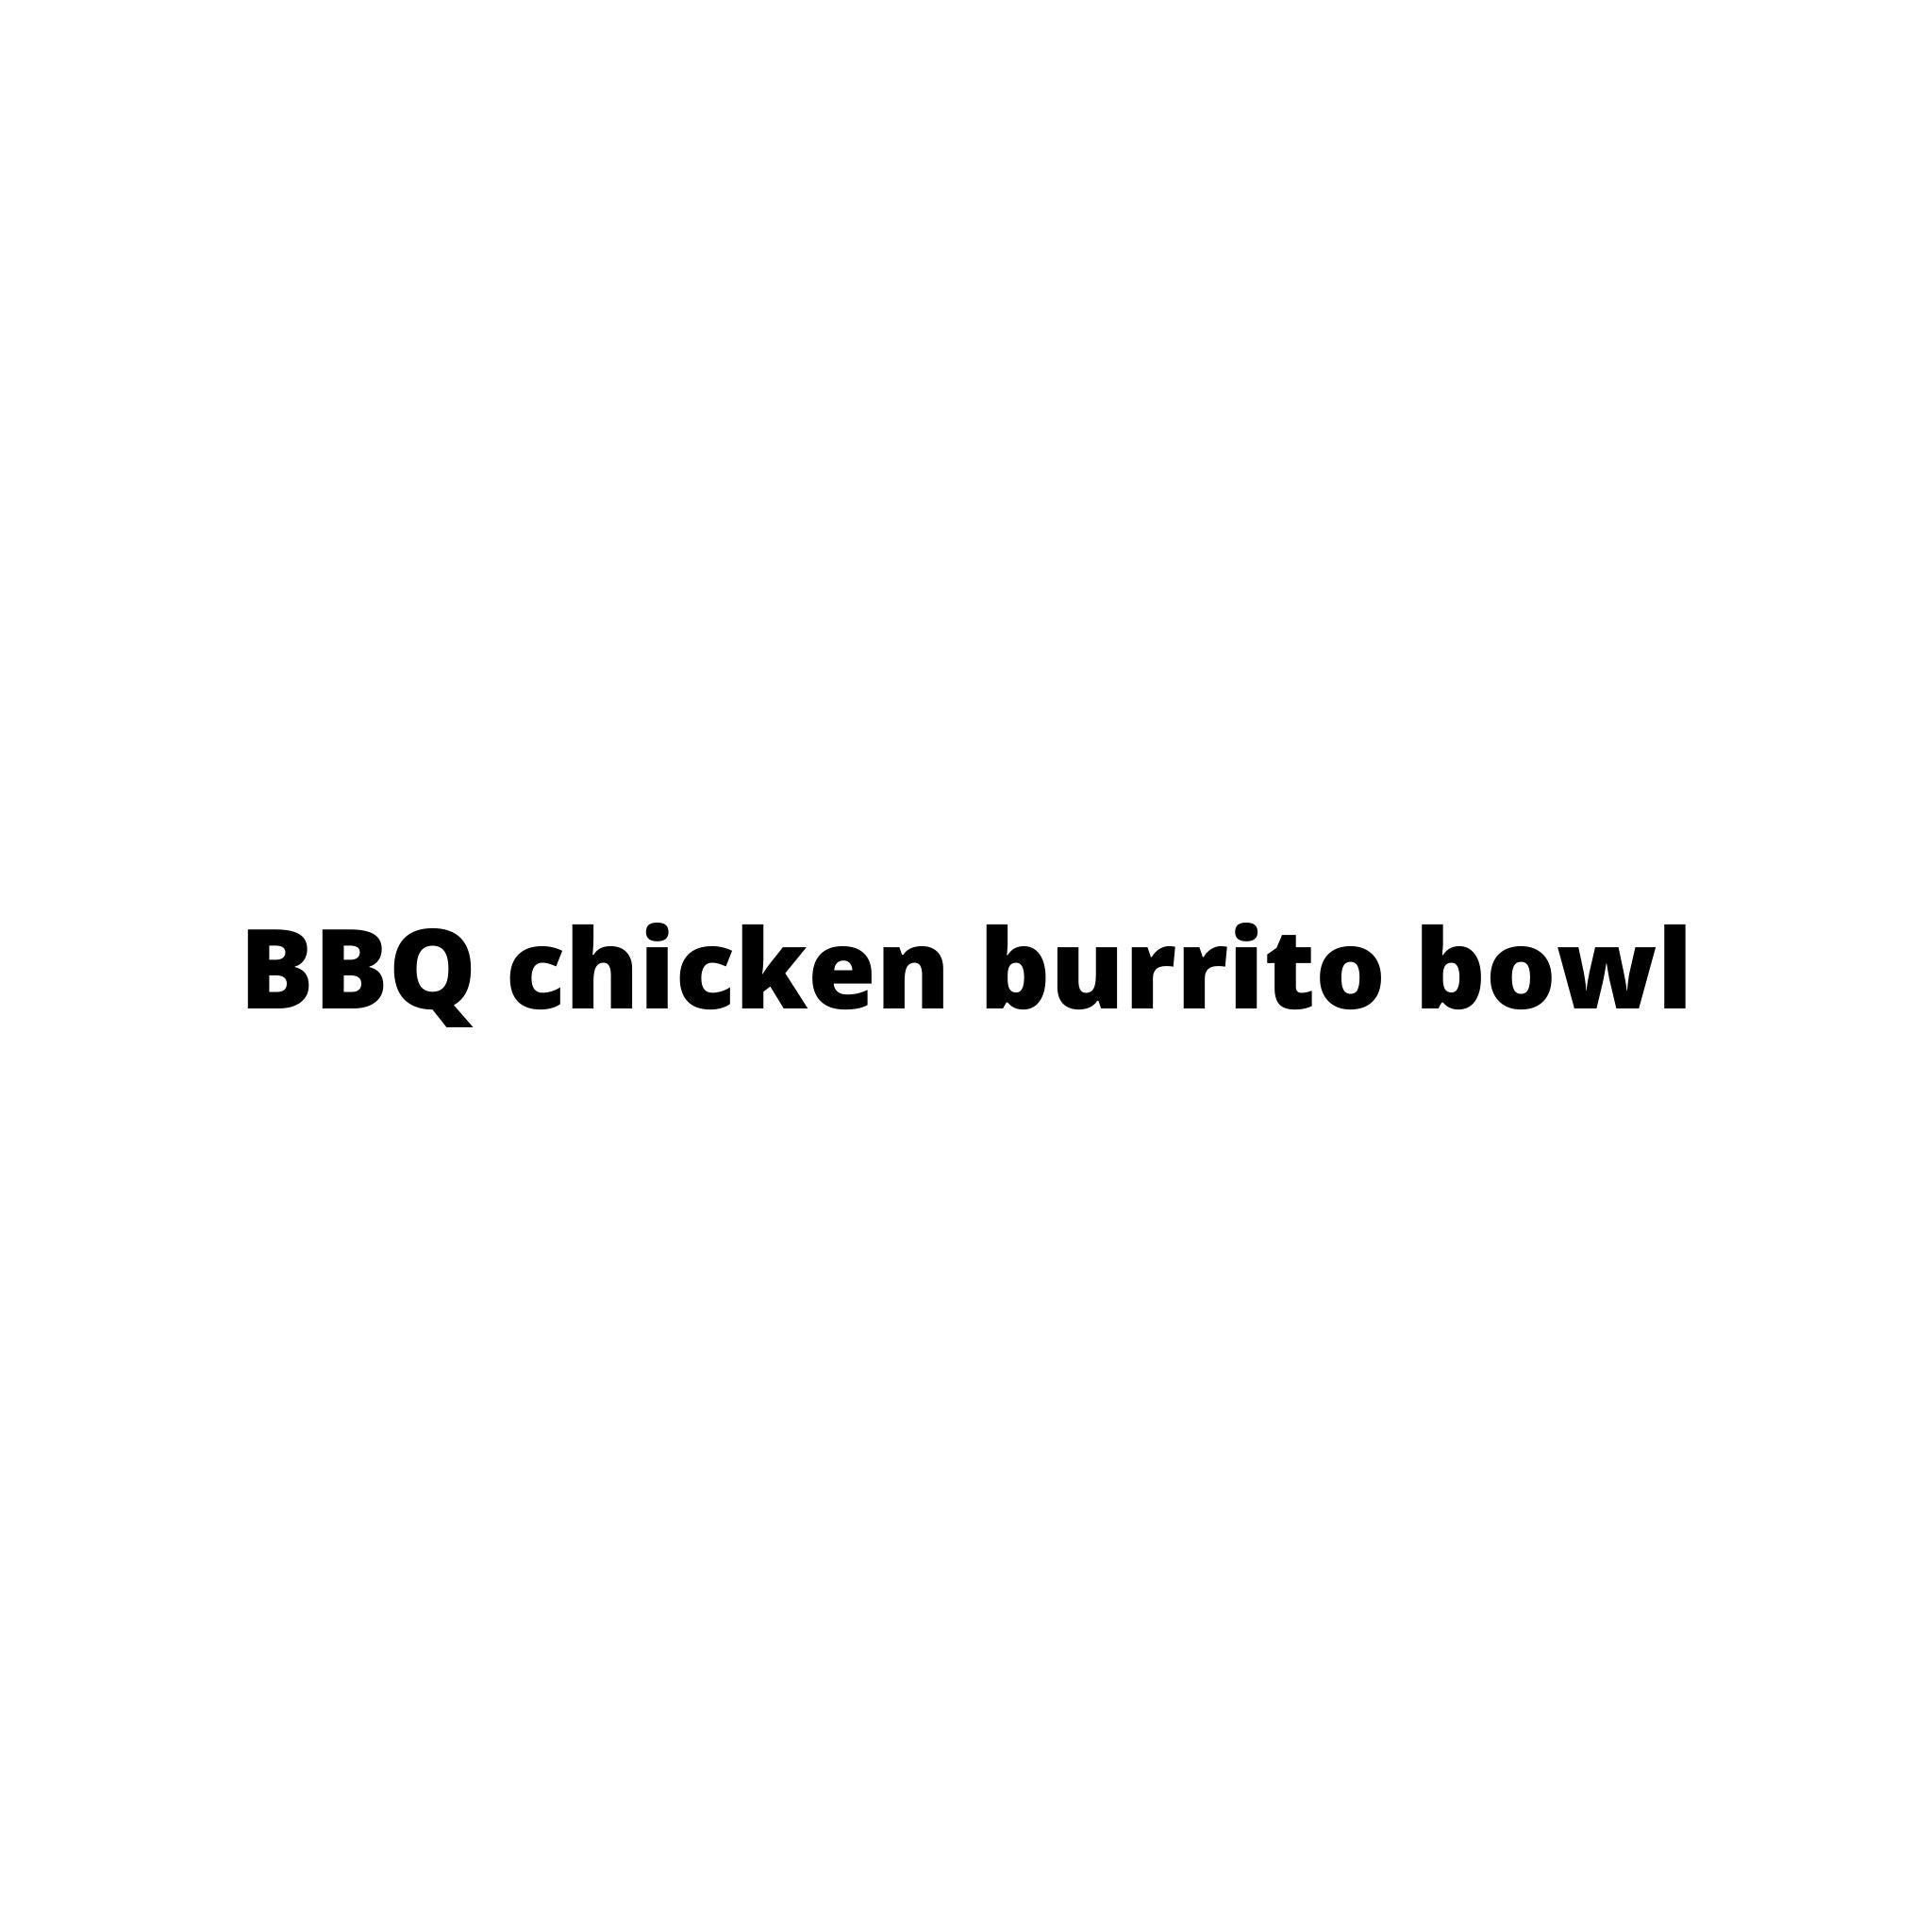 BBQ chicken burrito bowl